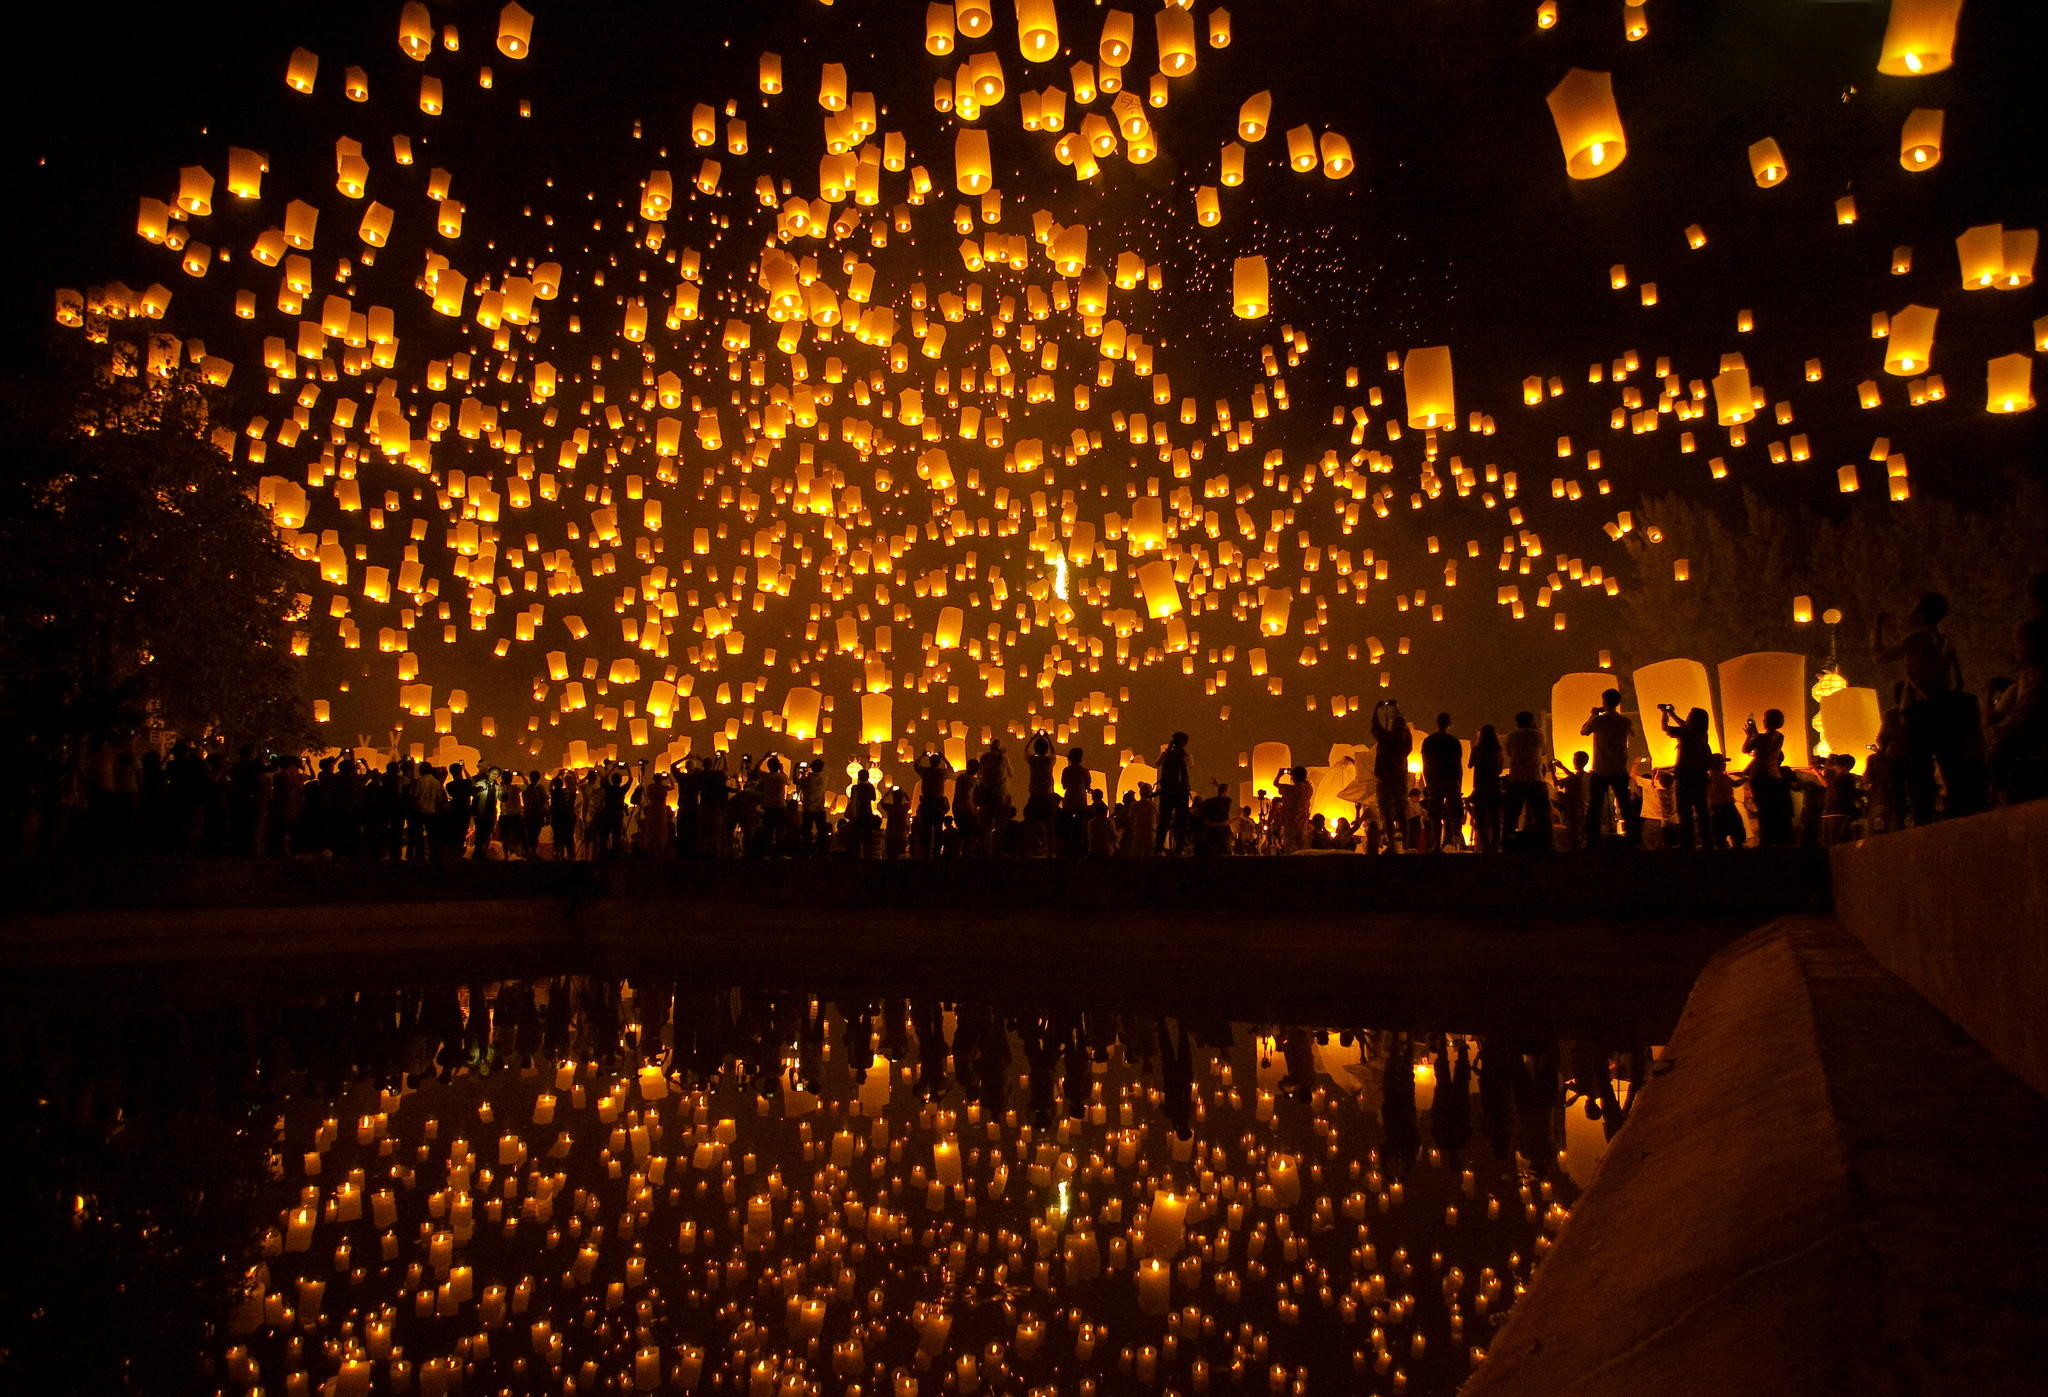 Thousands of lanterns take to the night sky in a lantern festival in  Thailand.